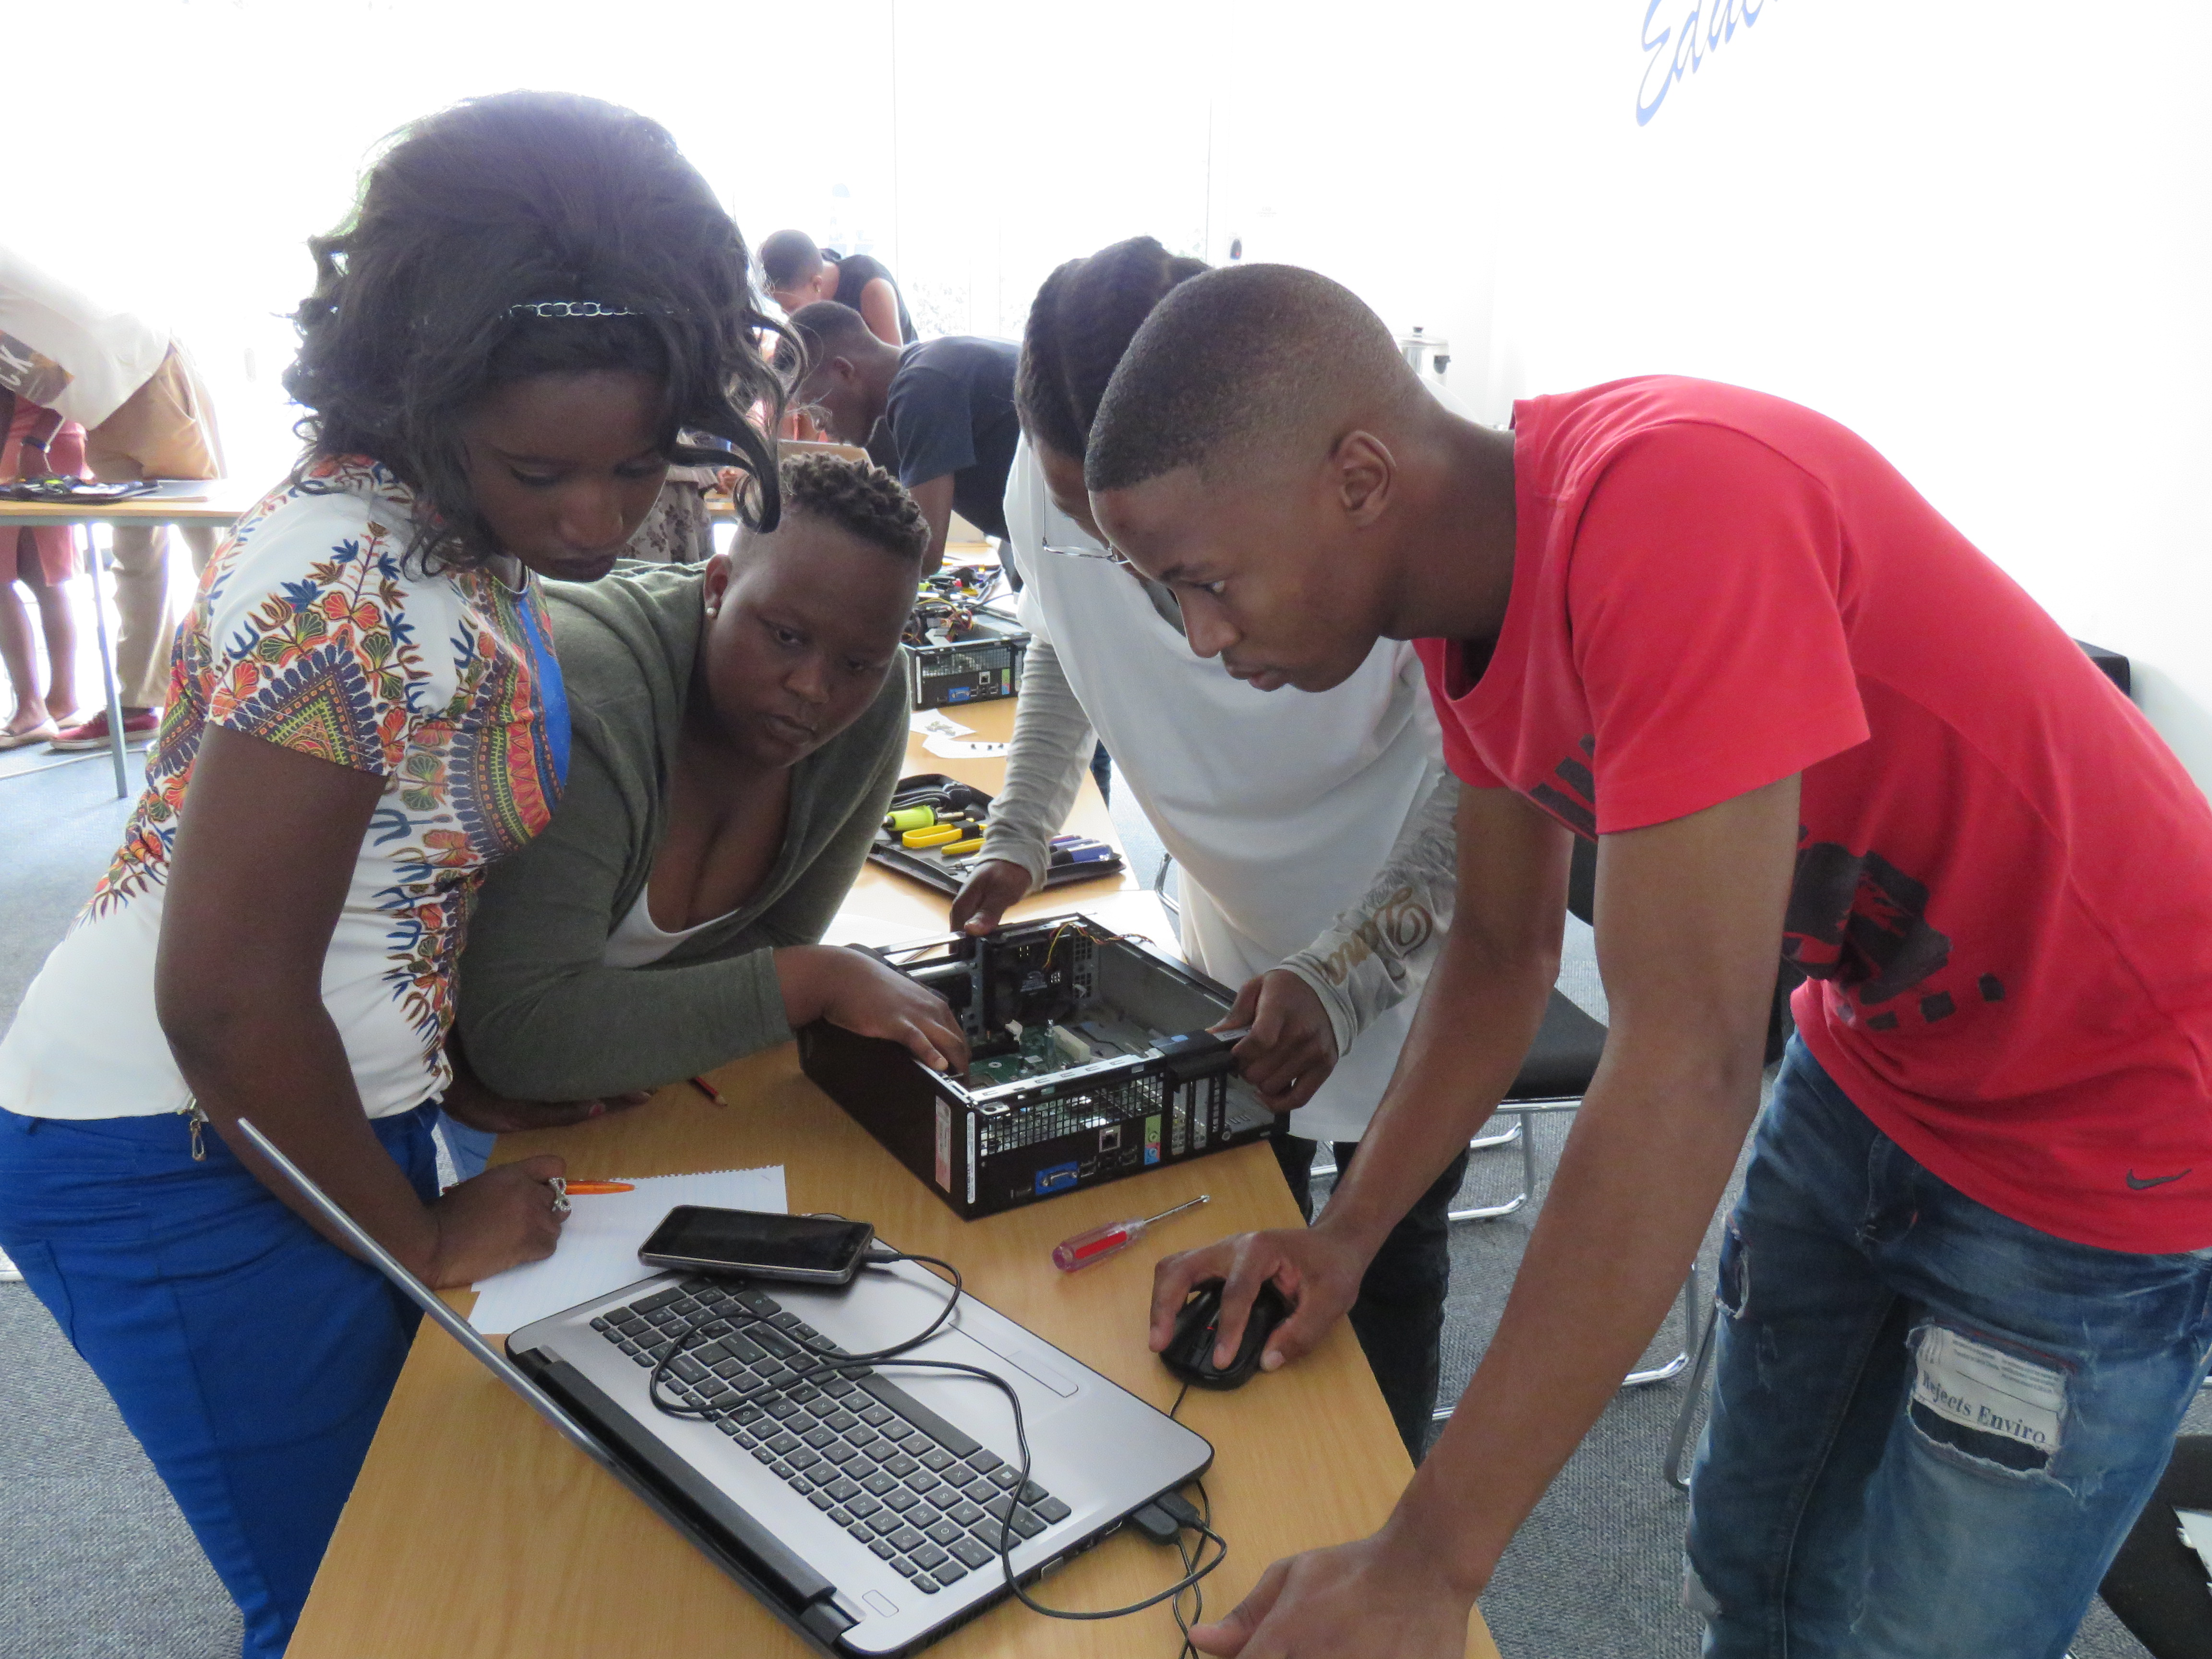 JOIN ORT SOUTH AFRICA TO PROVIDE OPPORTUNITIES FOR OUR YOUTH